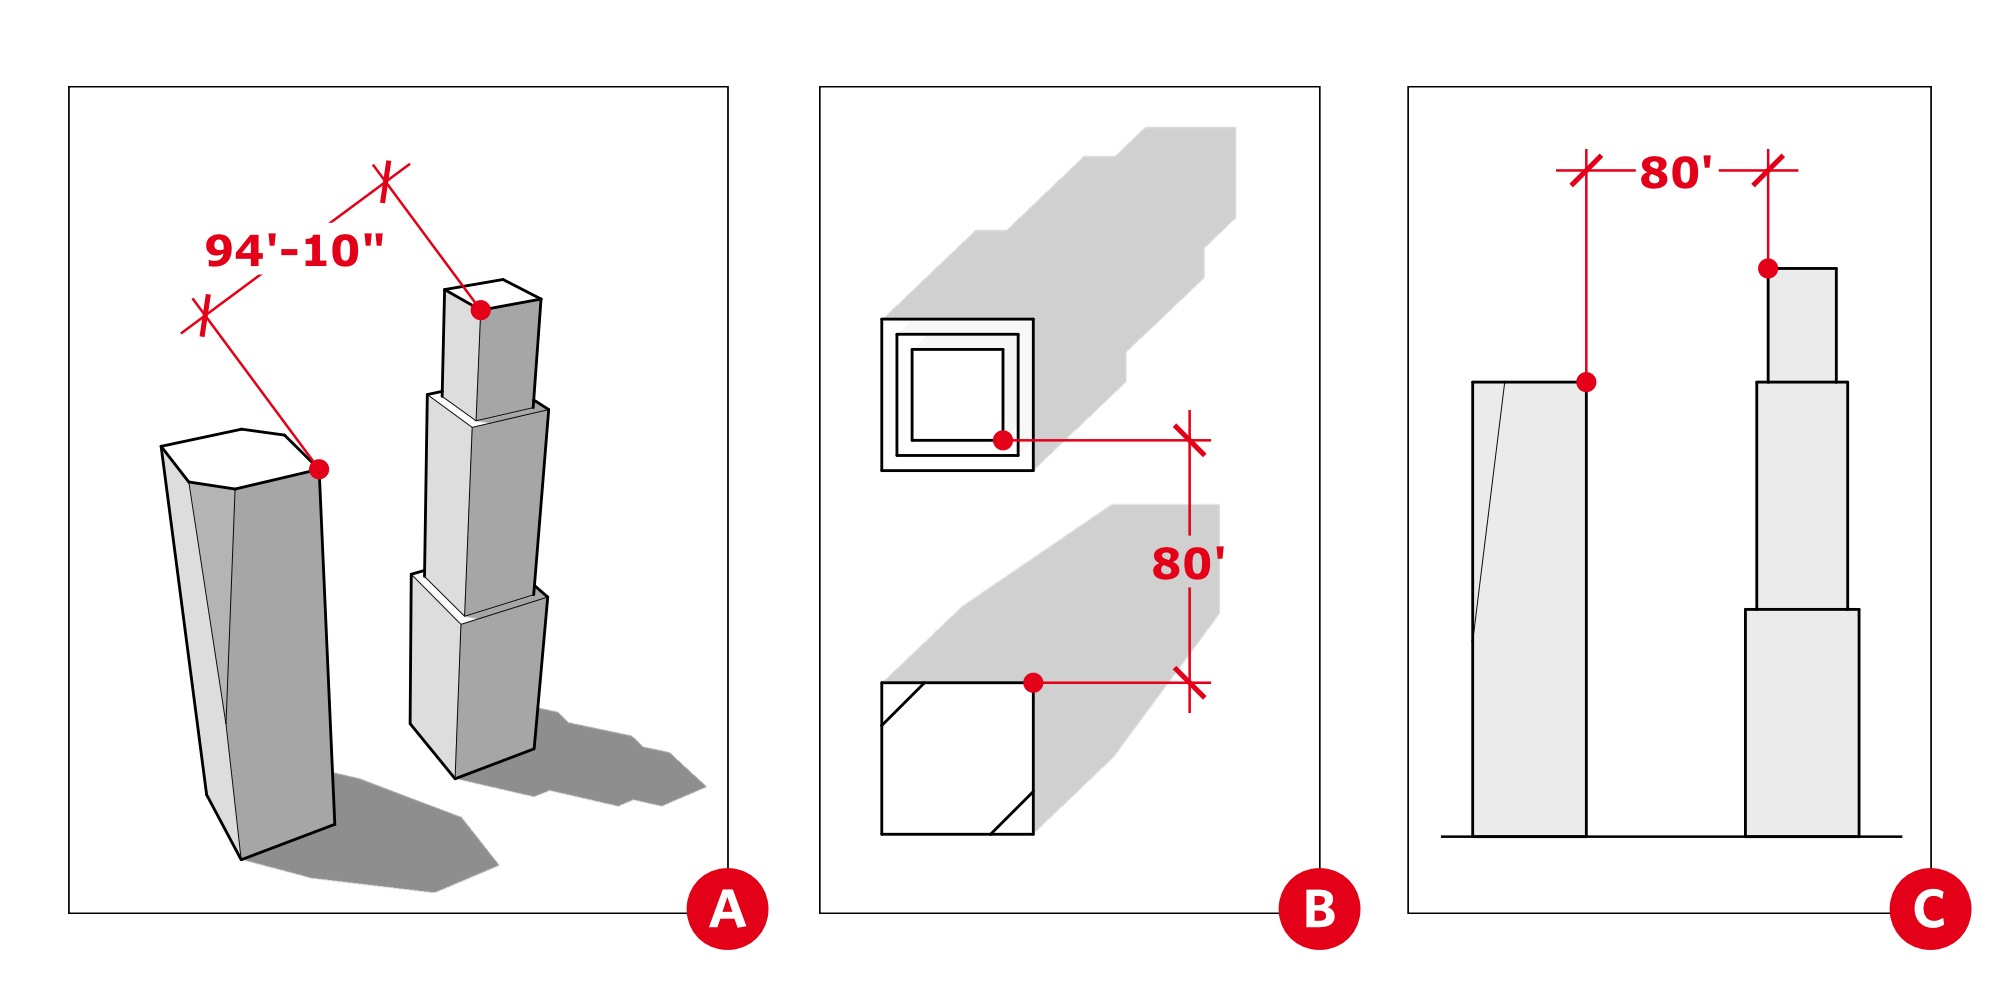 hight resolution of marking dimensions sketchup help can you provide a connection picture diagram for my dimension